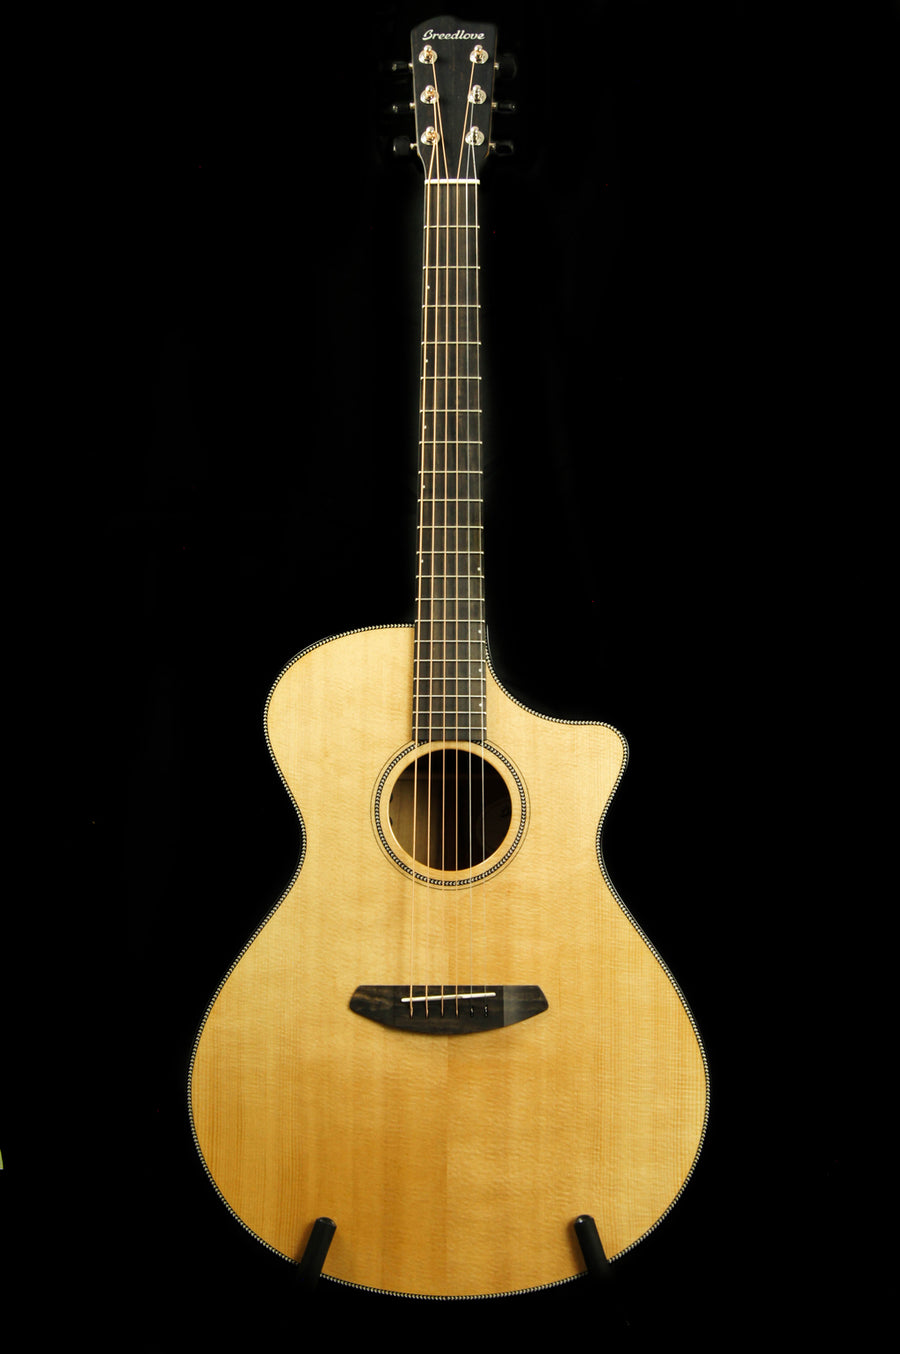 Breedlove Oregon Series Concerto CE Sitka Spruce/Myrtlewood Acoustic Electric Guitar - Includes Case